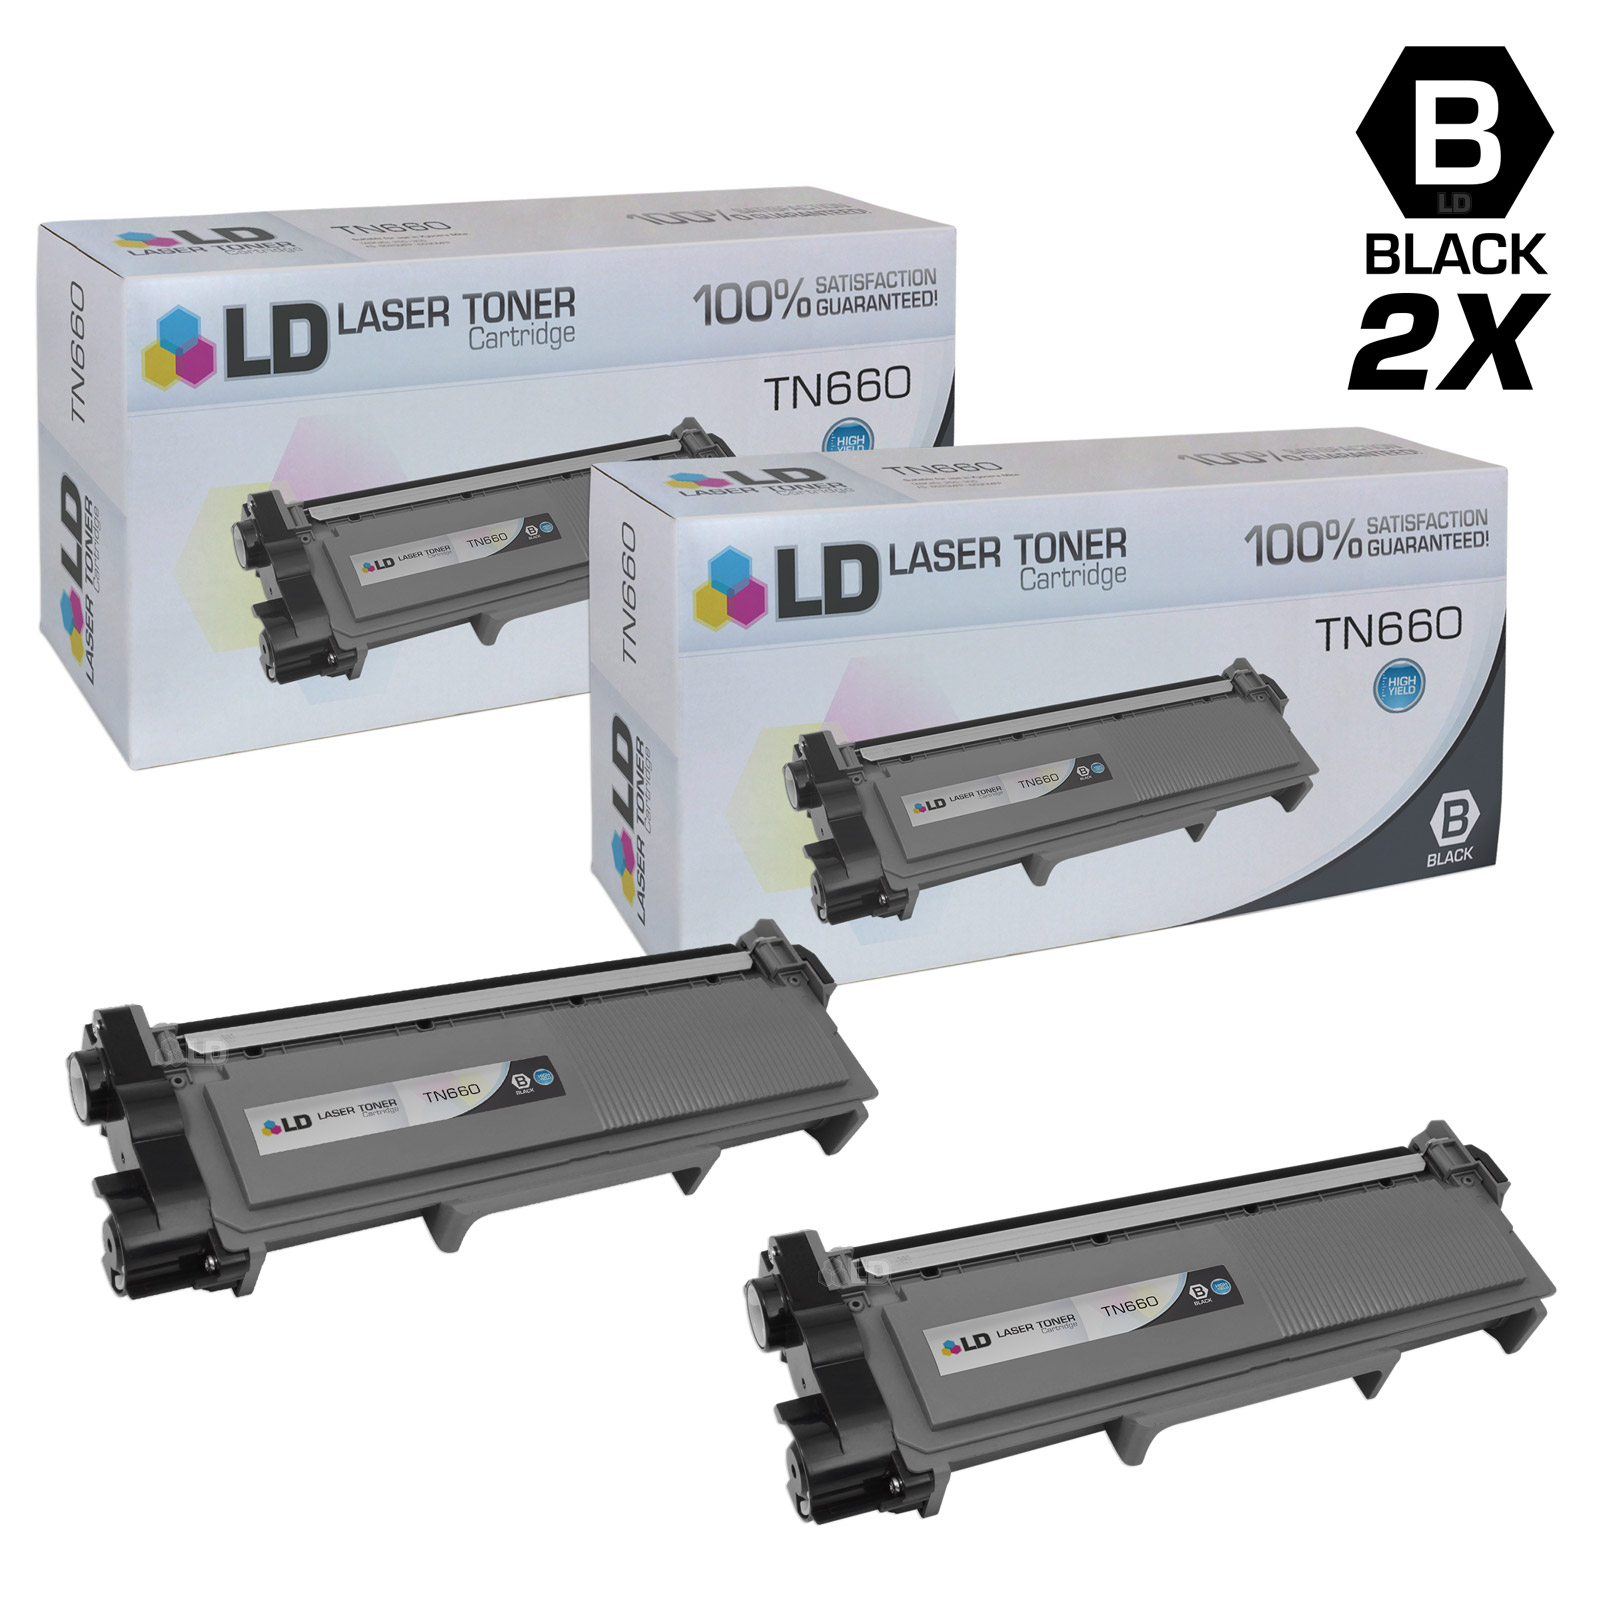 LD Compatible Brother TN660 Set of 2 HY Black Toner Cartridges for DCP-L2520DW, DCP-L2540DW, HL-L2300D, HL-L2305W, HL-L2320D, HL-L2340DW, HL-L2360DW & MFC-L2680W, MFC-L2685DW, MFC-L2740DW